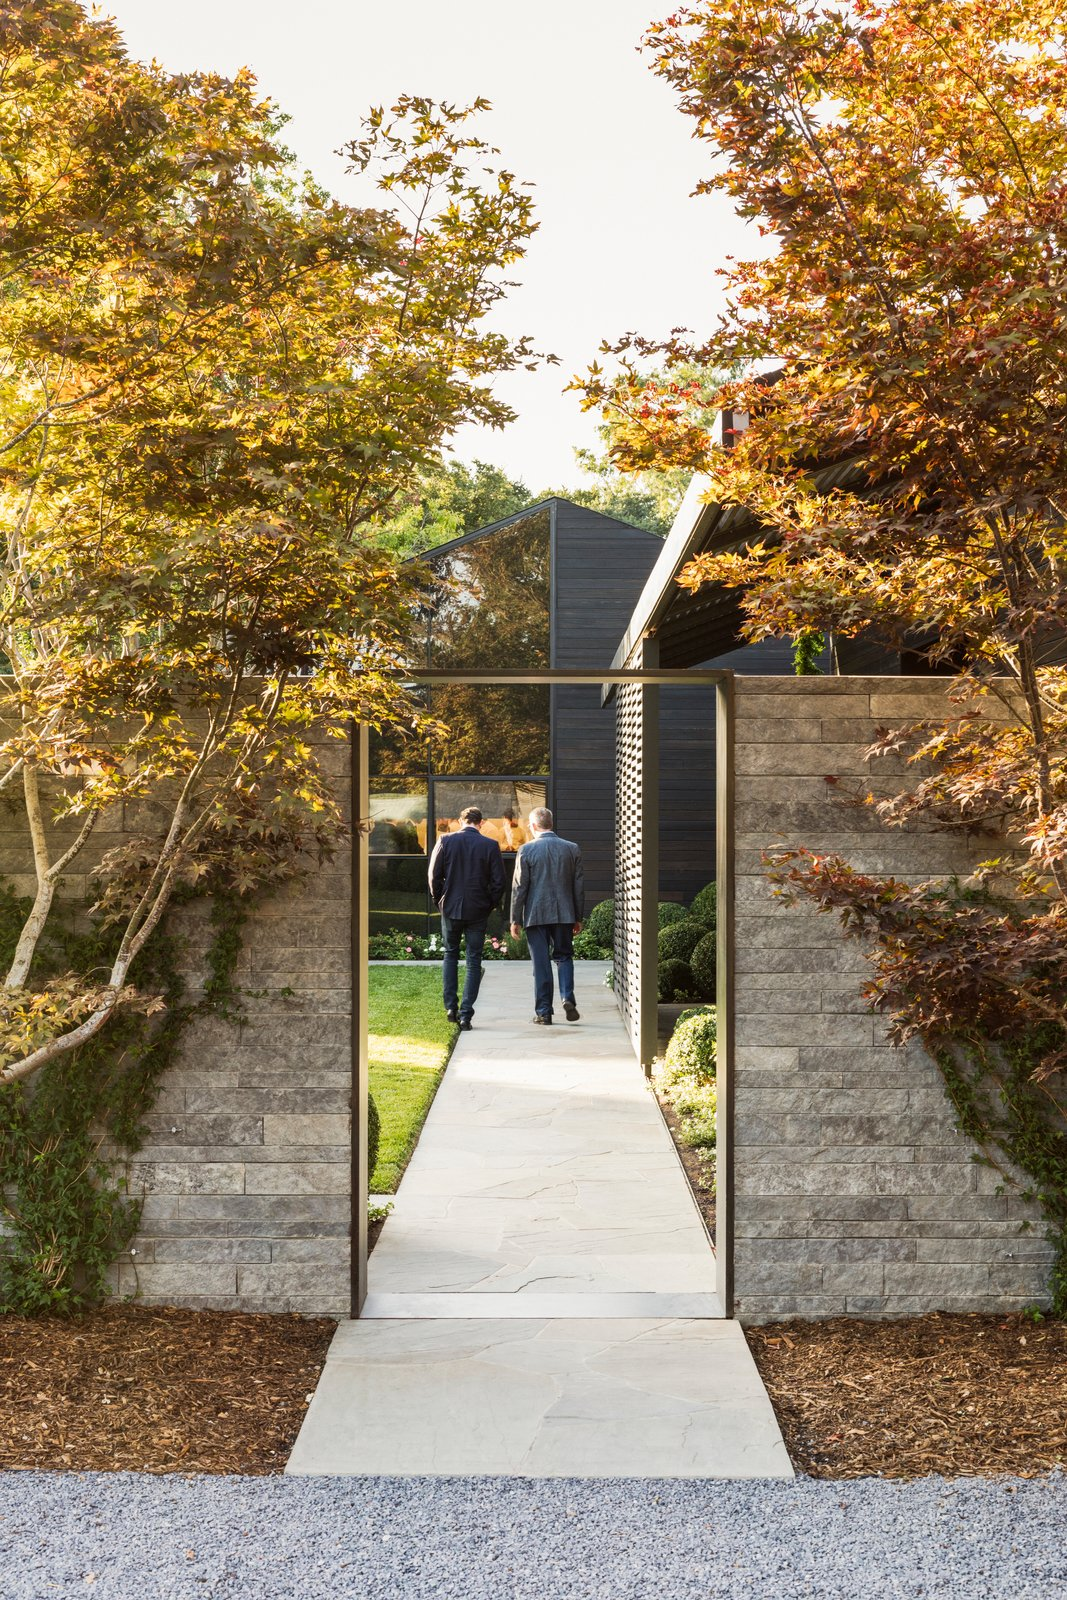 Exterior, Wood Siding Material, Stone Siding Material, and Glass Siding Material Arriving at The French Laundry, guests now begin their experience through a sequence of new garden spaces.  Photo 2 of 12 in A Look Inside The French Laundry's Stunning $10M Renovation